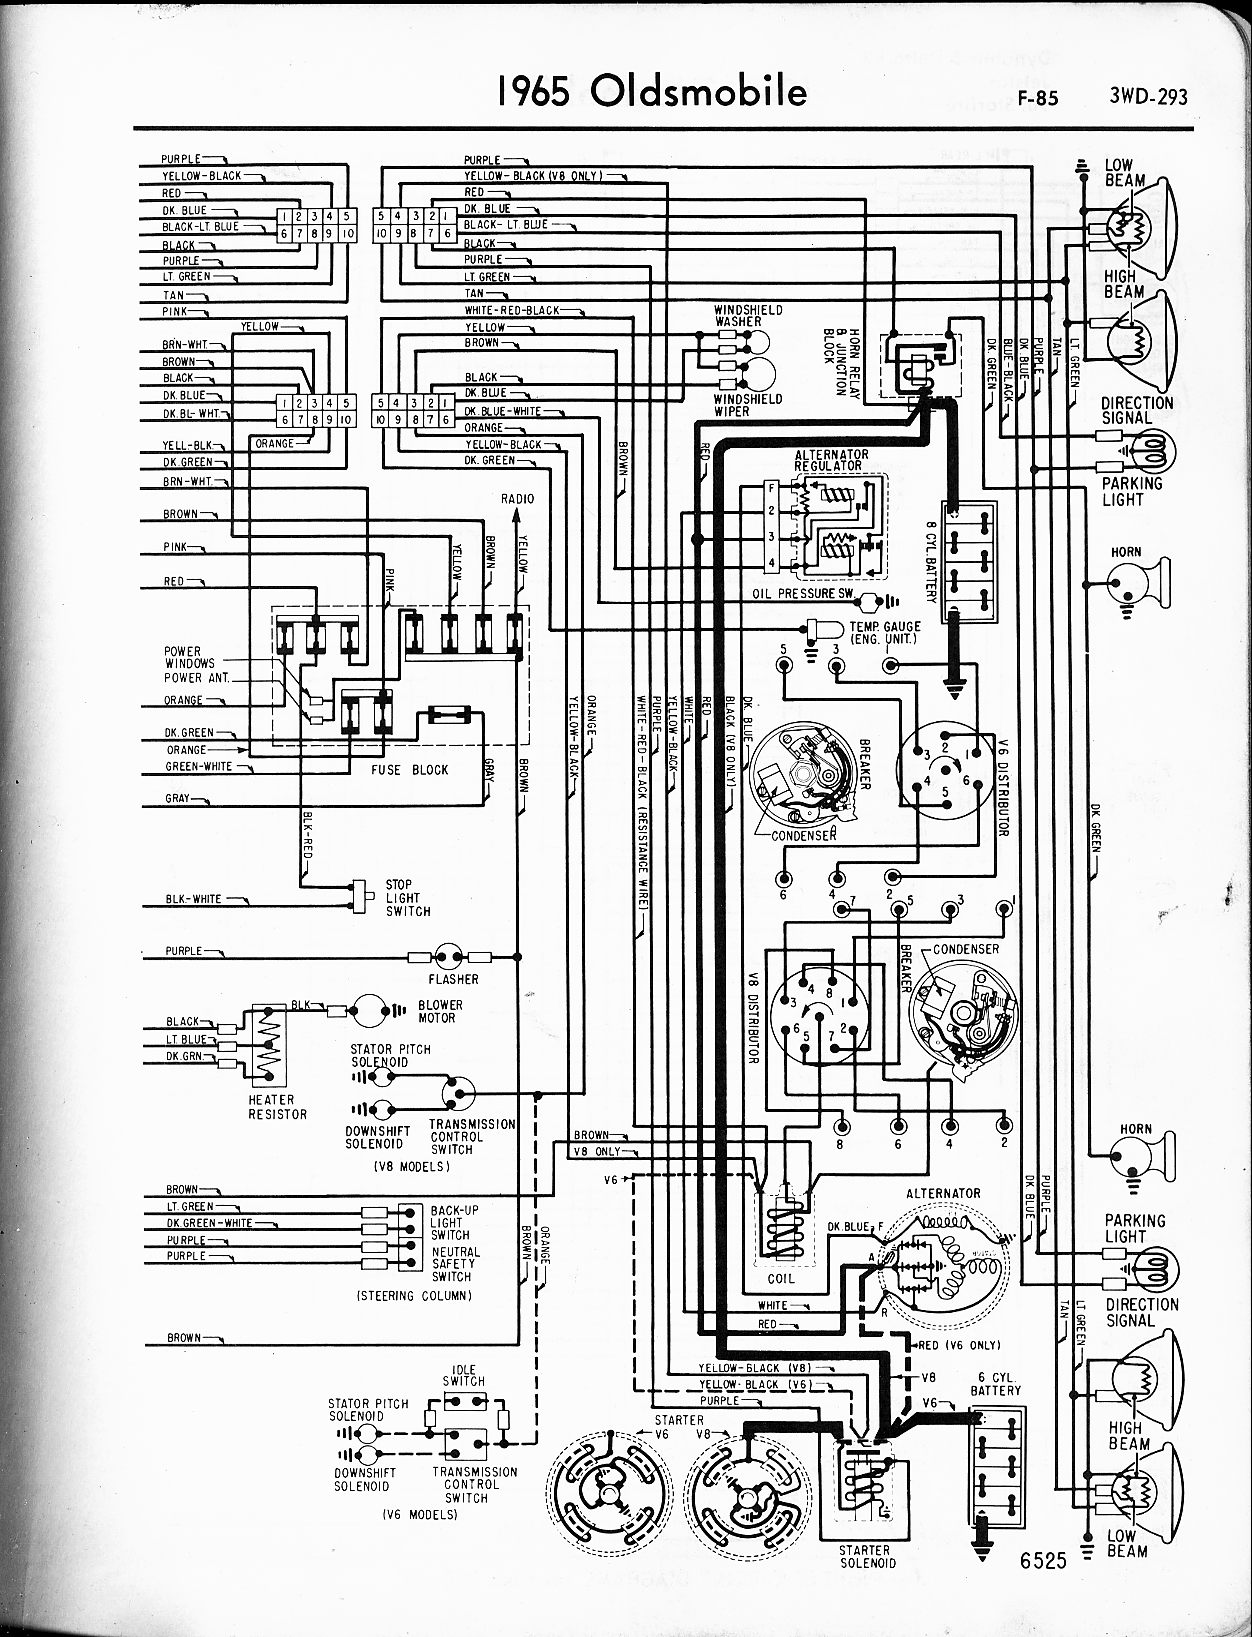 1967 Rally 442 Oldsmobile Wiring Schematic - Wiring Diagram